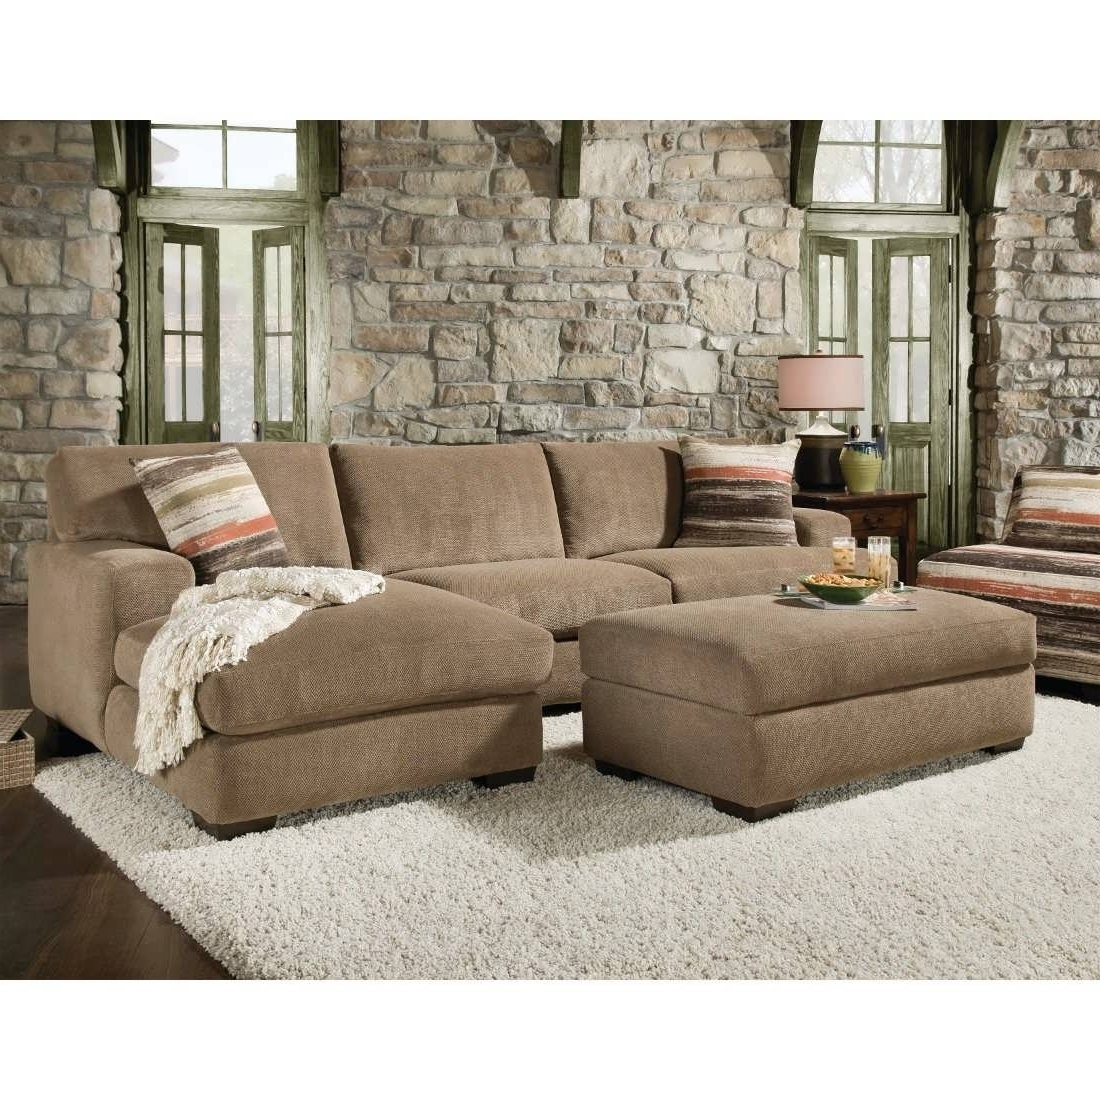 Most Up To Date Tan Sectionals With Chaise Intended For Sofa : Living Room Sectionals Sectional Couch With Chaise Tan (View 6 of 15)